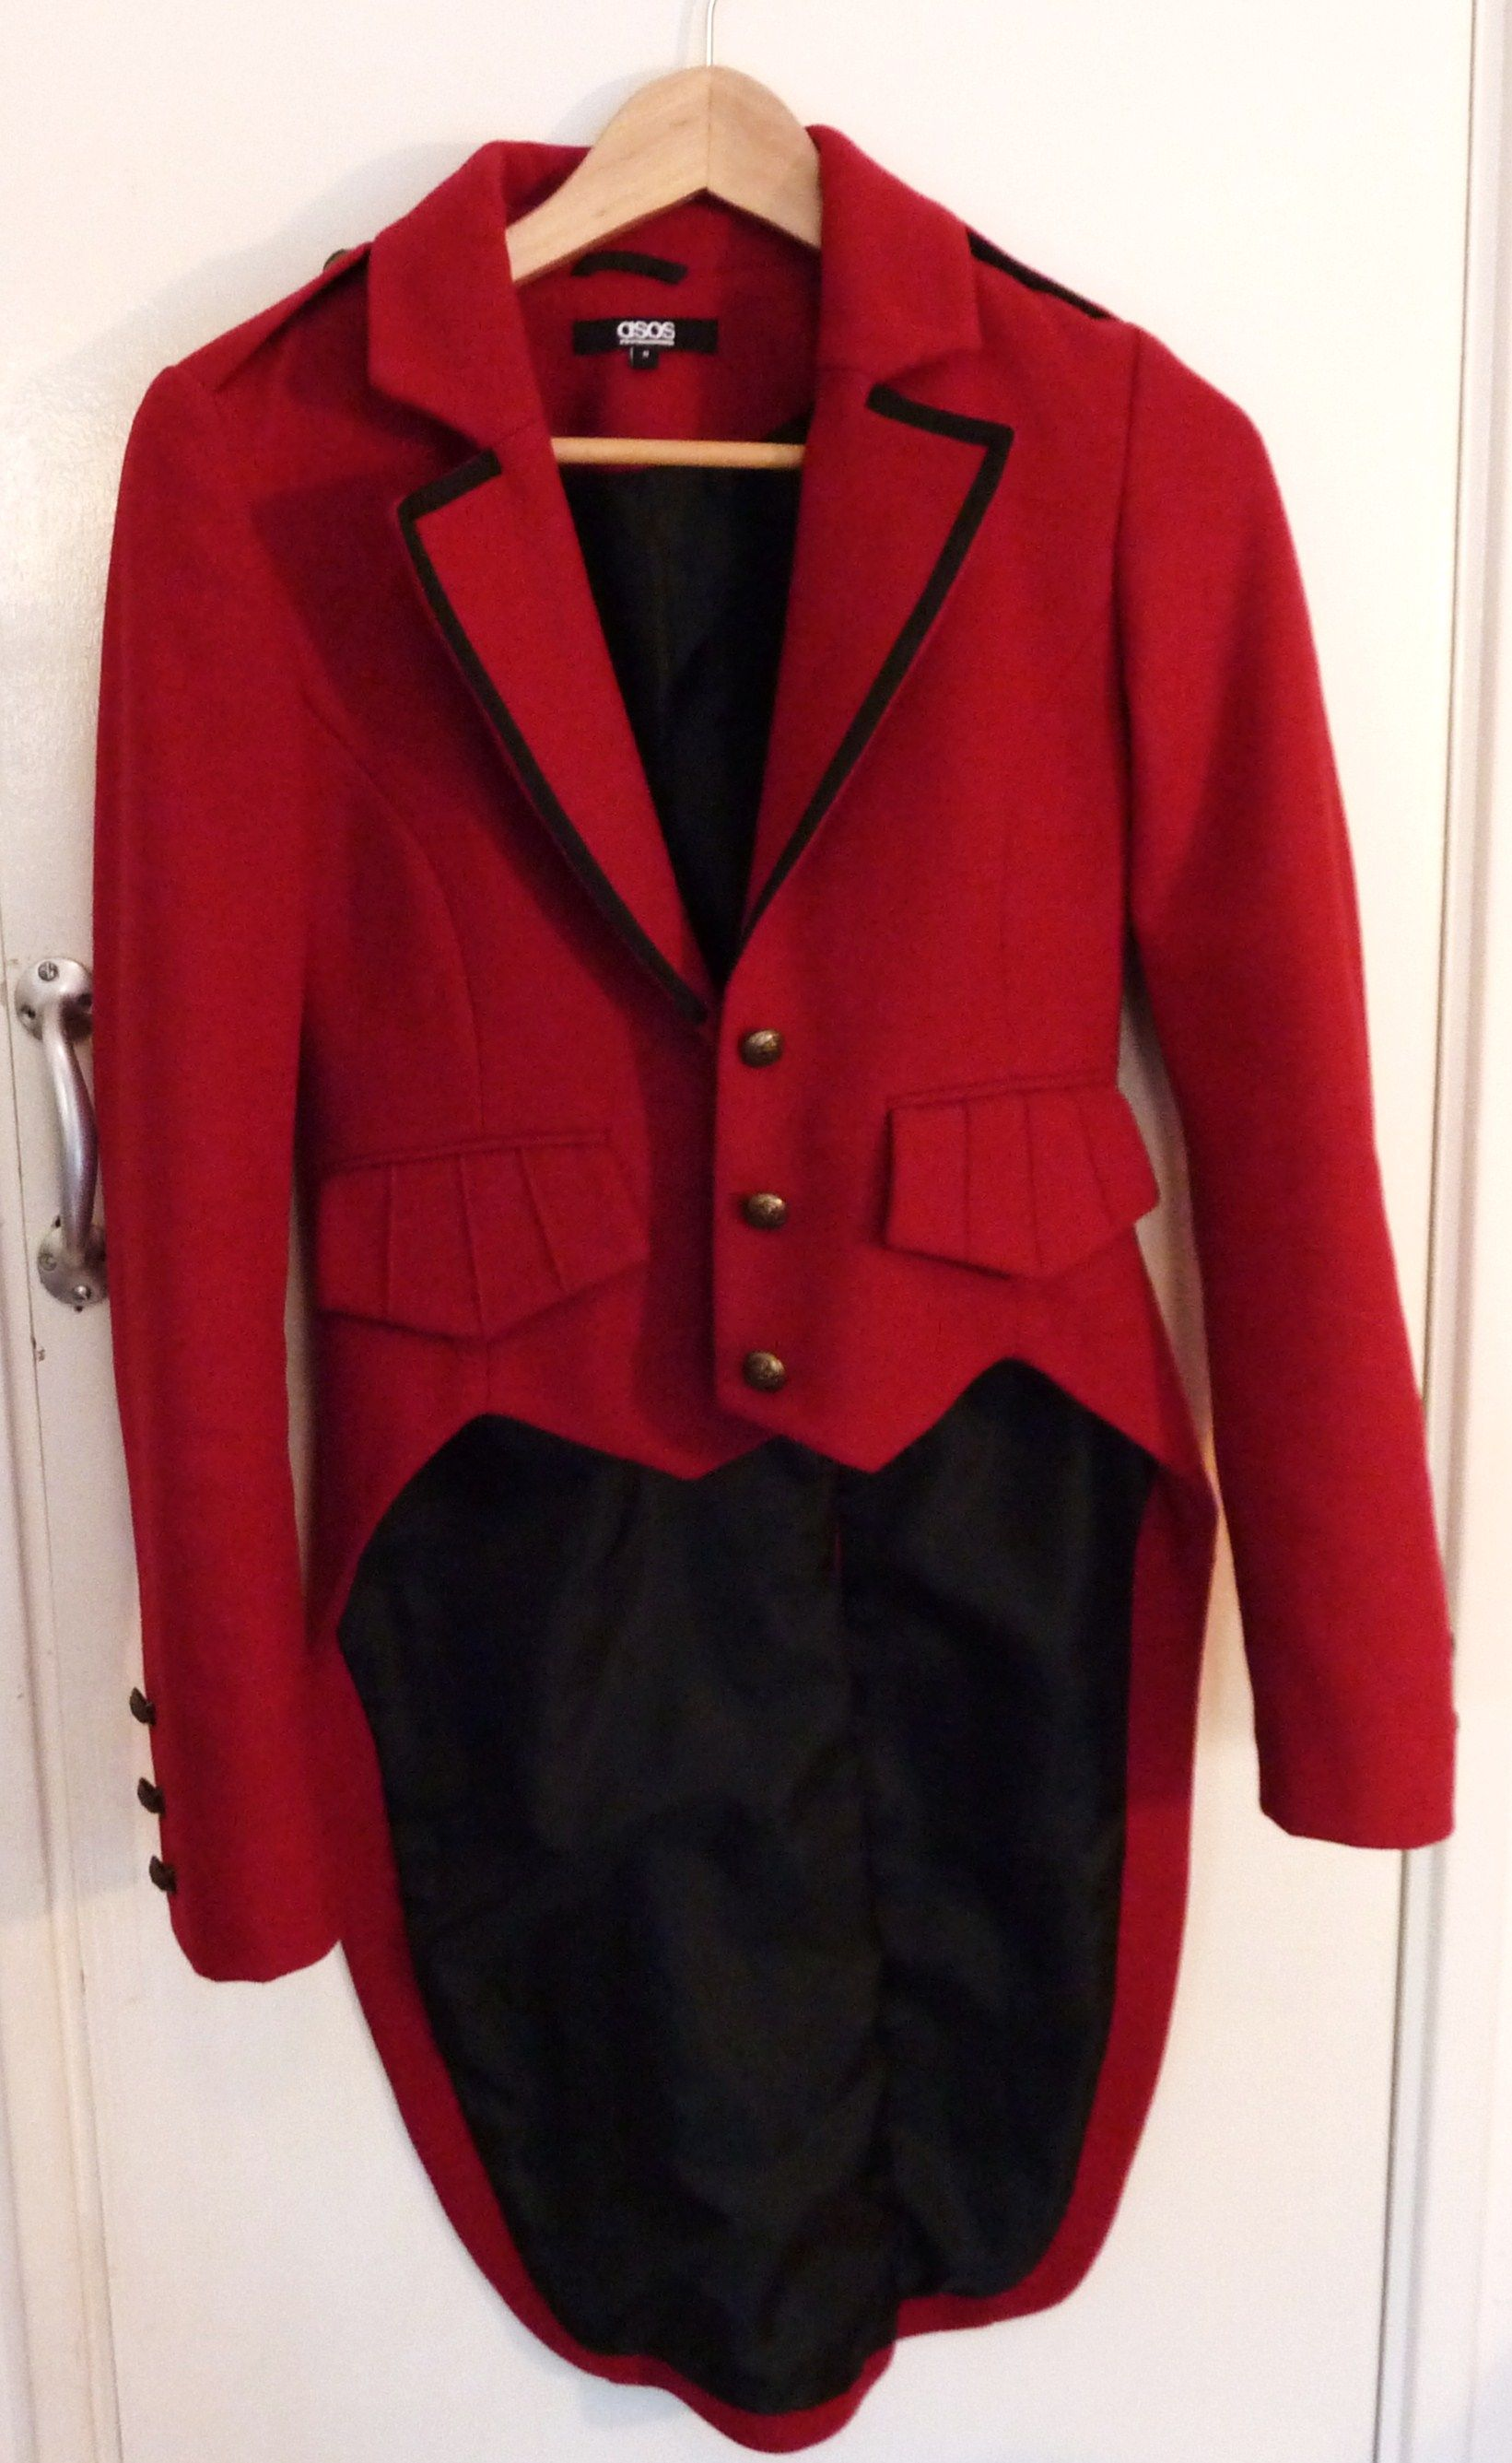 Asos Red Military Jacket Ringmaster Style Size 8 Sold